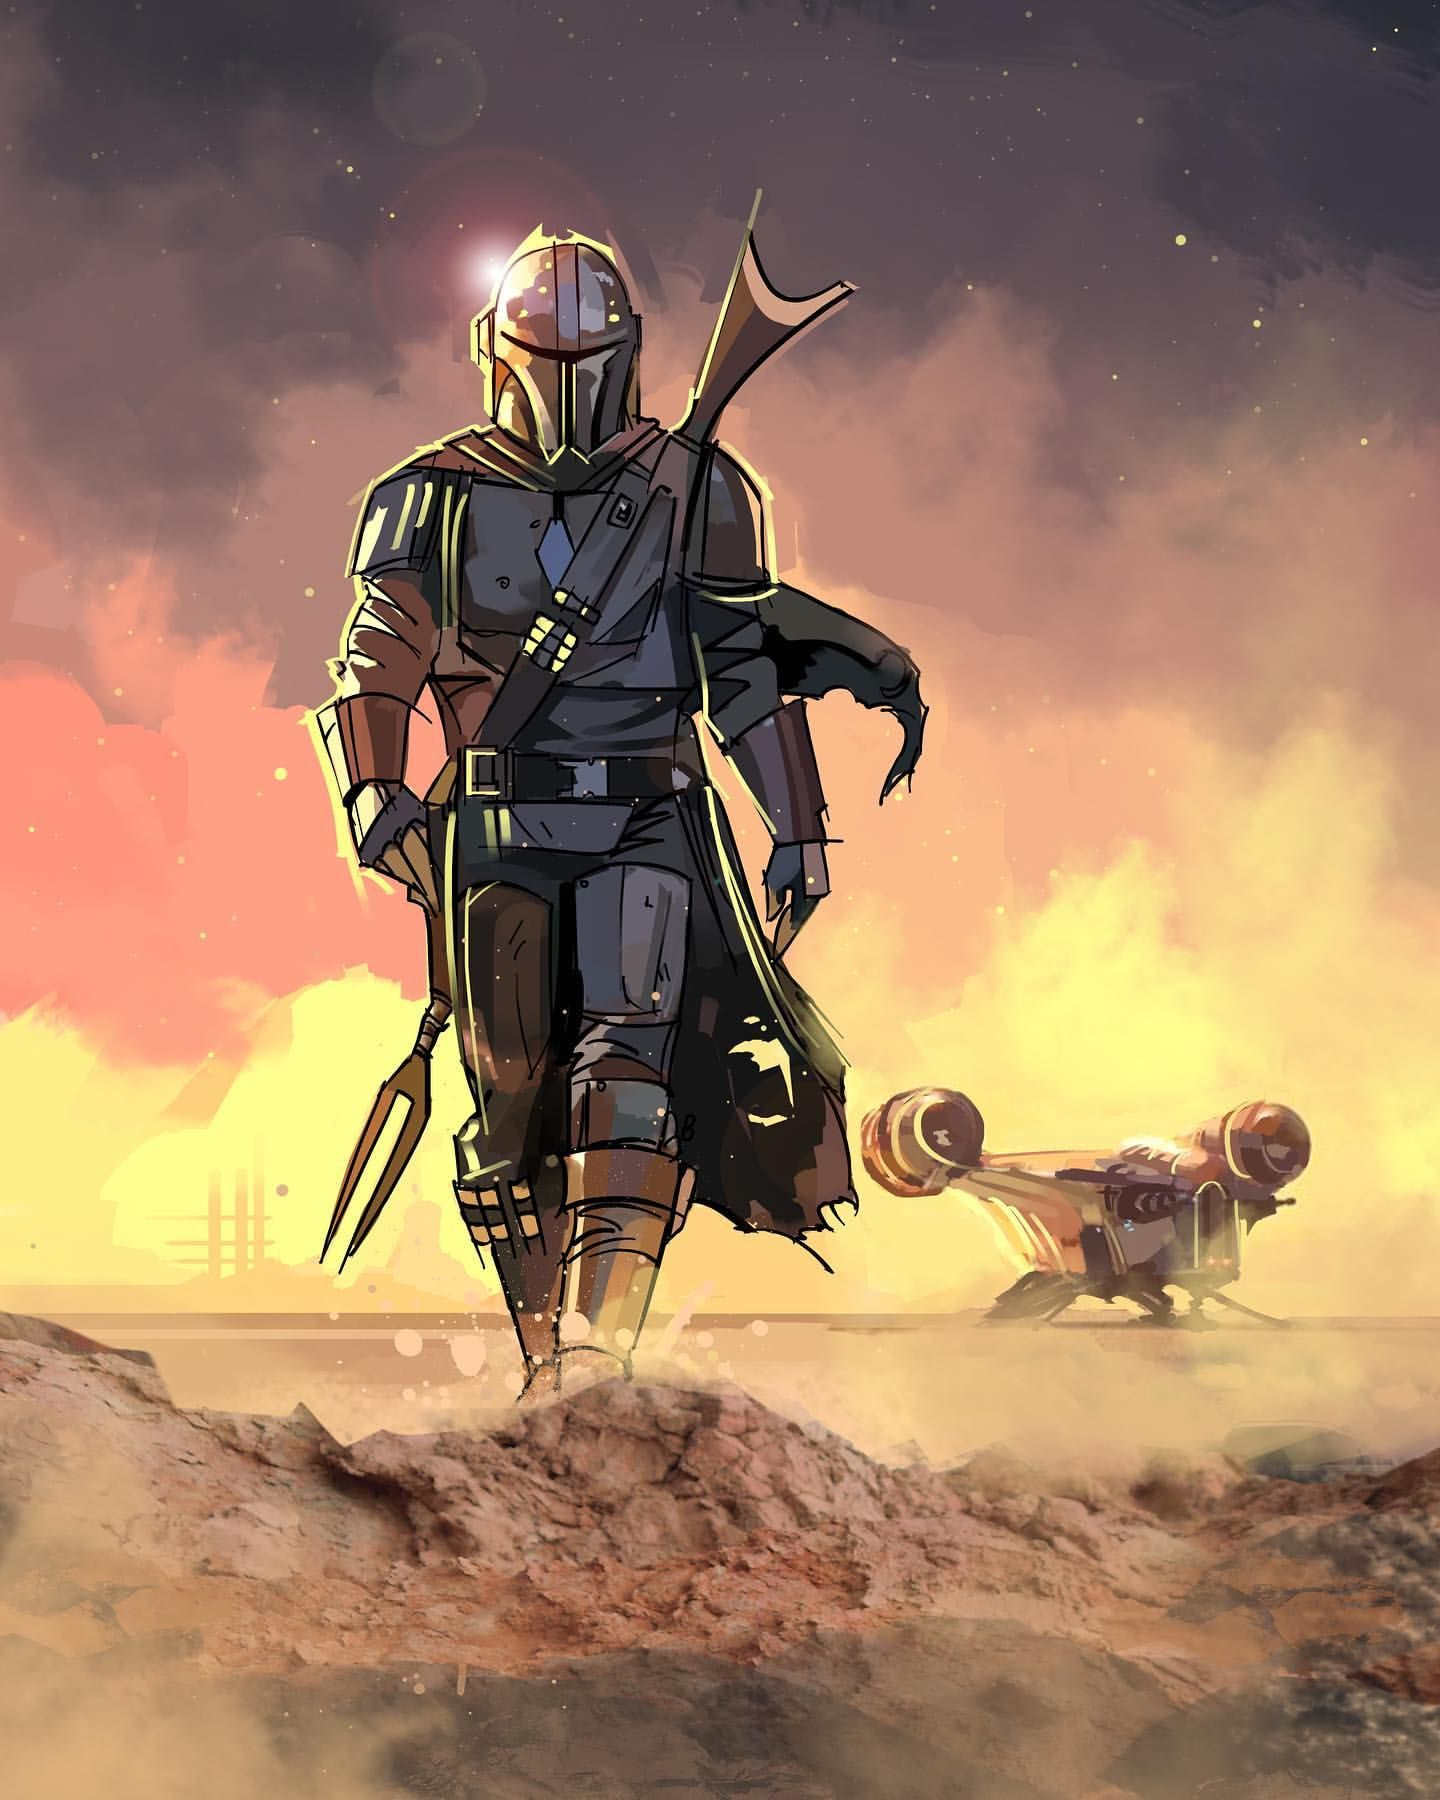 The mandalorian by eli hyder venamis star wars pictures